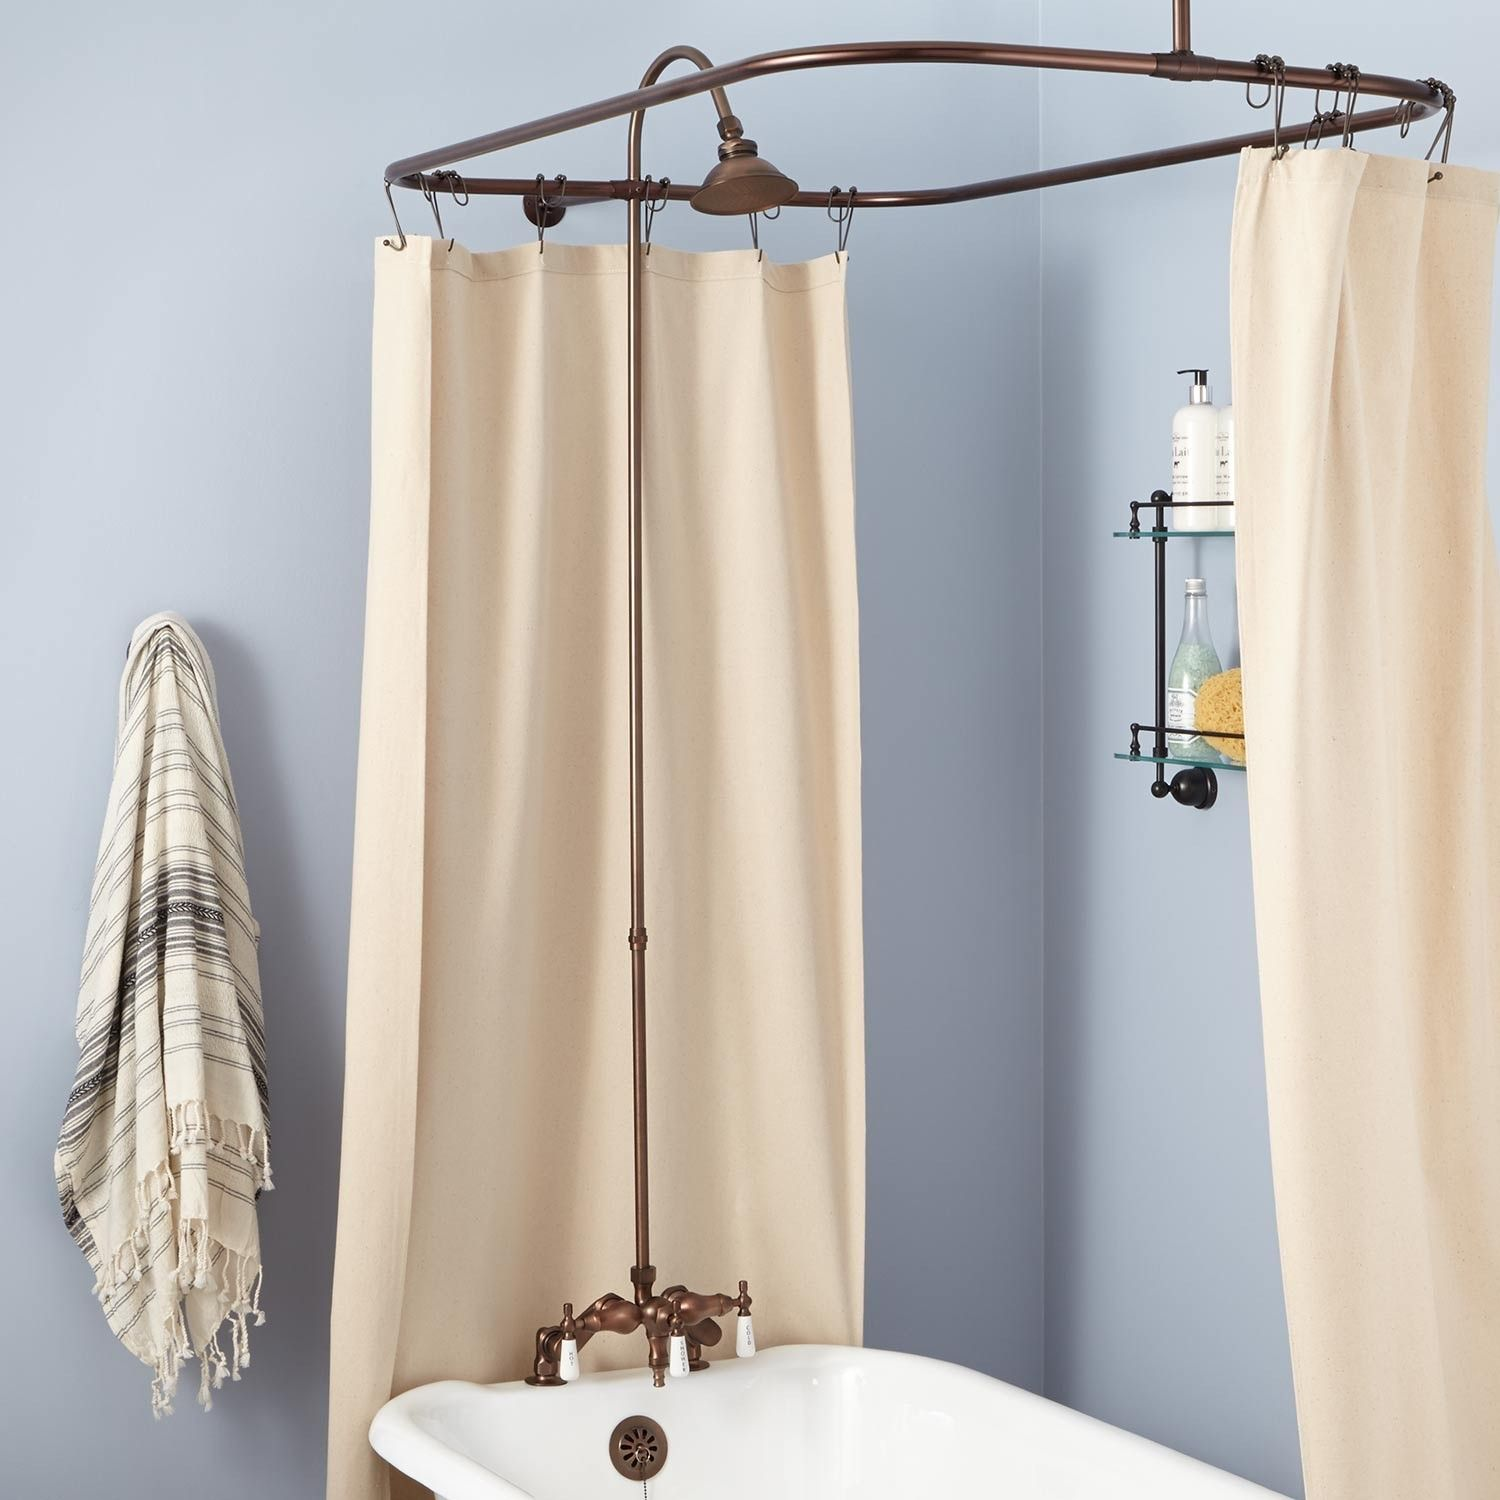 Fresh 7 Foot Shower Rod Check More At Homefurnitureone